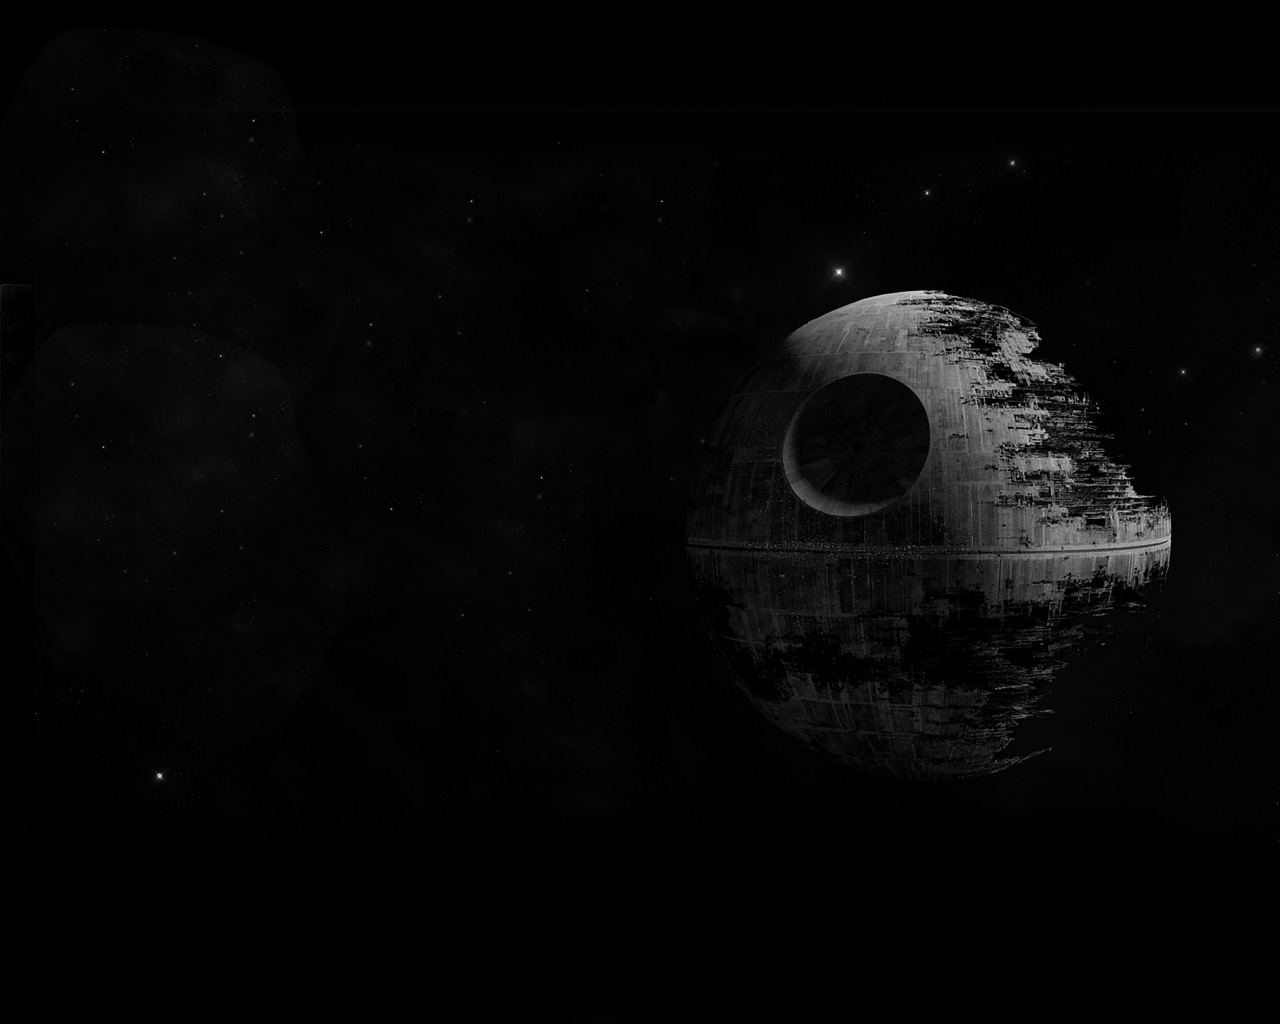 Star Wars Day: Free Wallpapers Download - ChurchMag